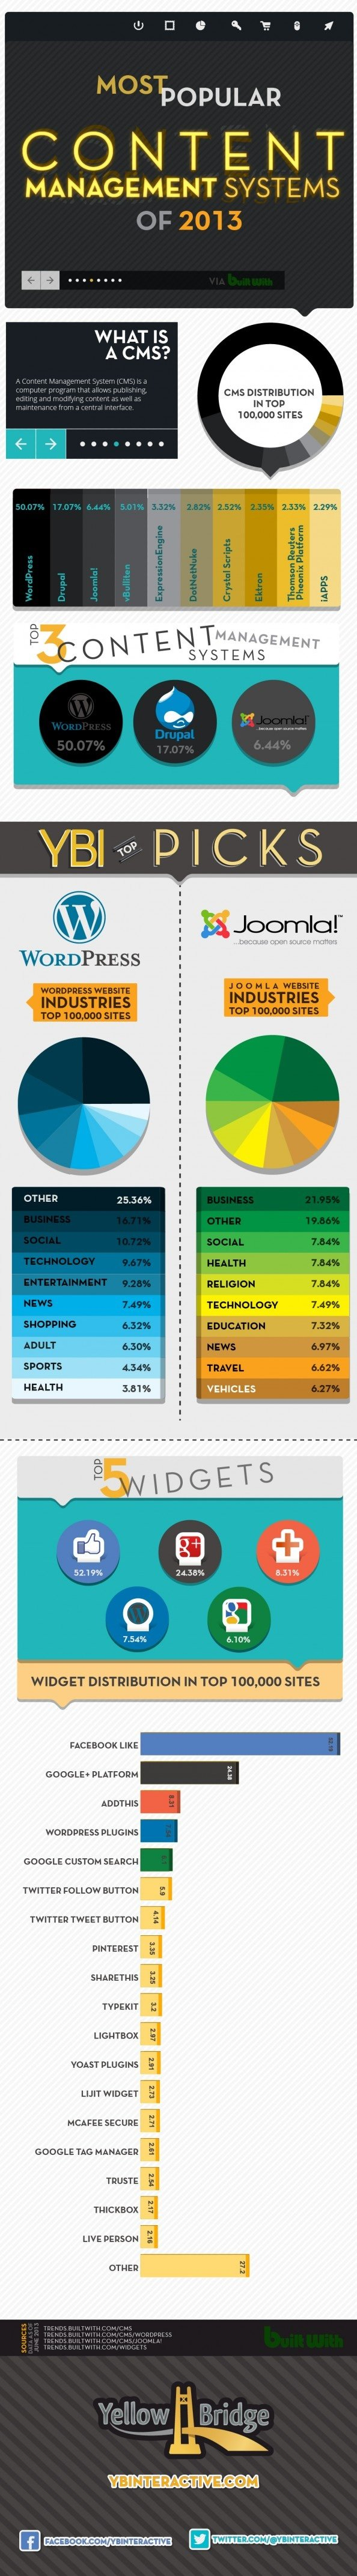 Most Popular Content management systems #Infographic #CMS